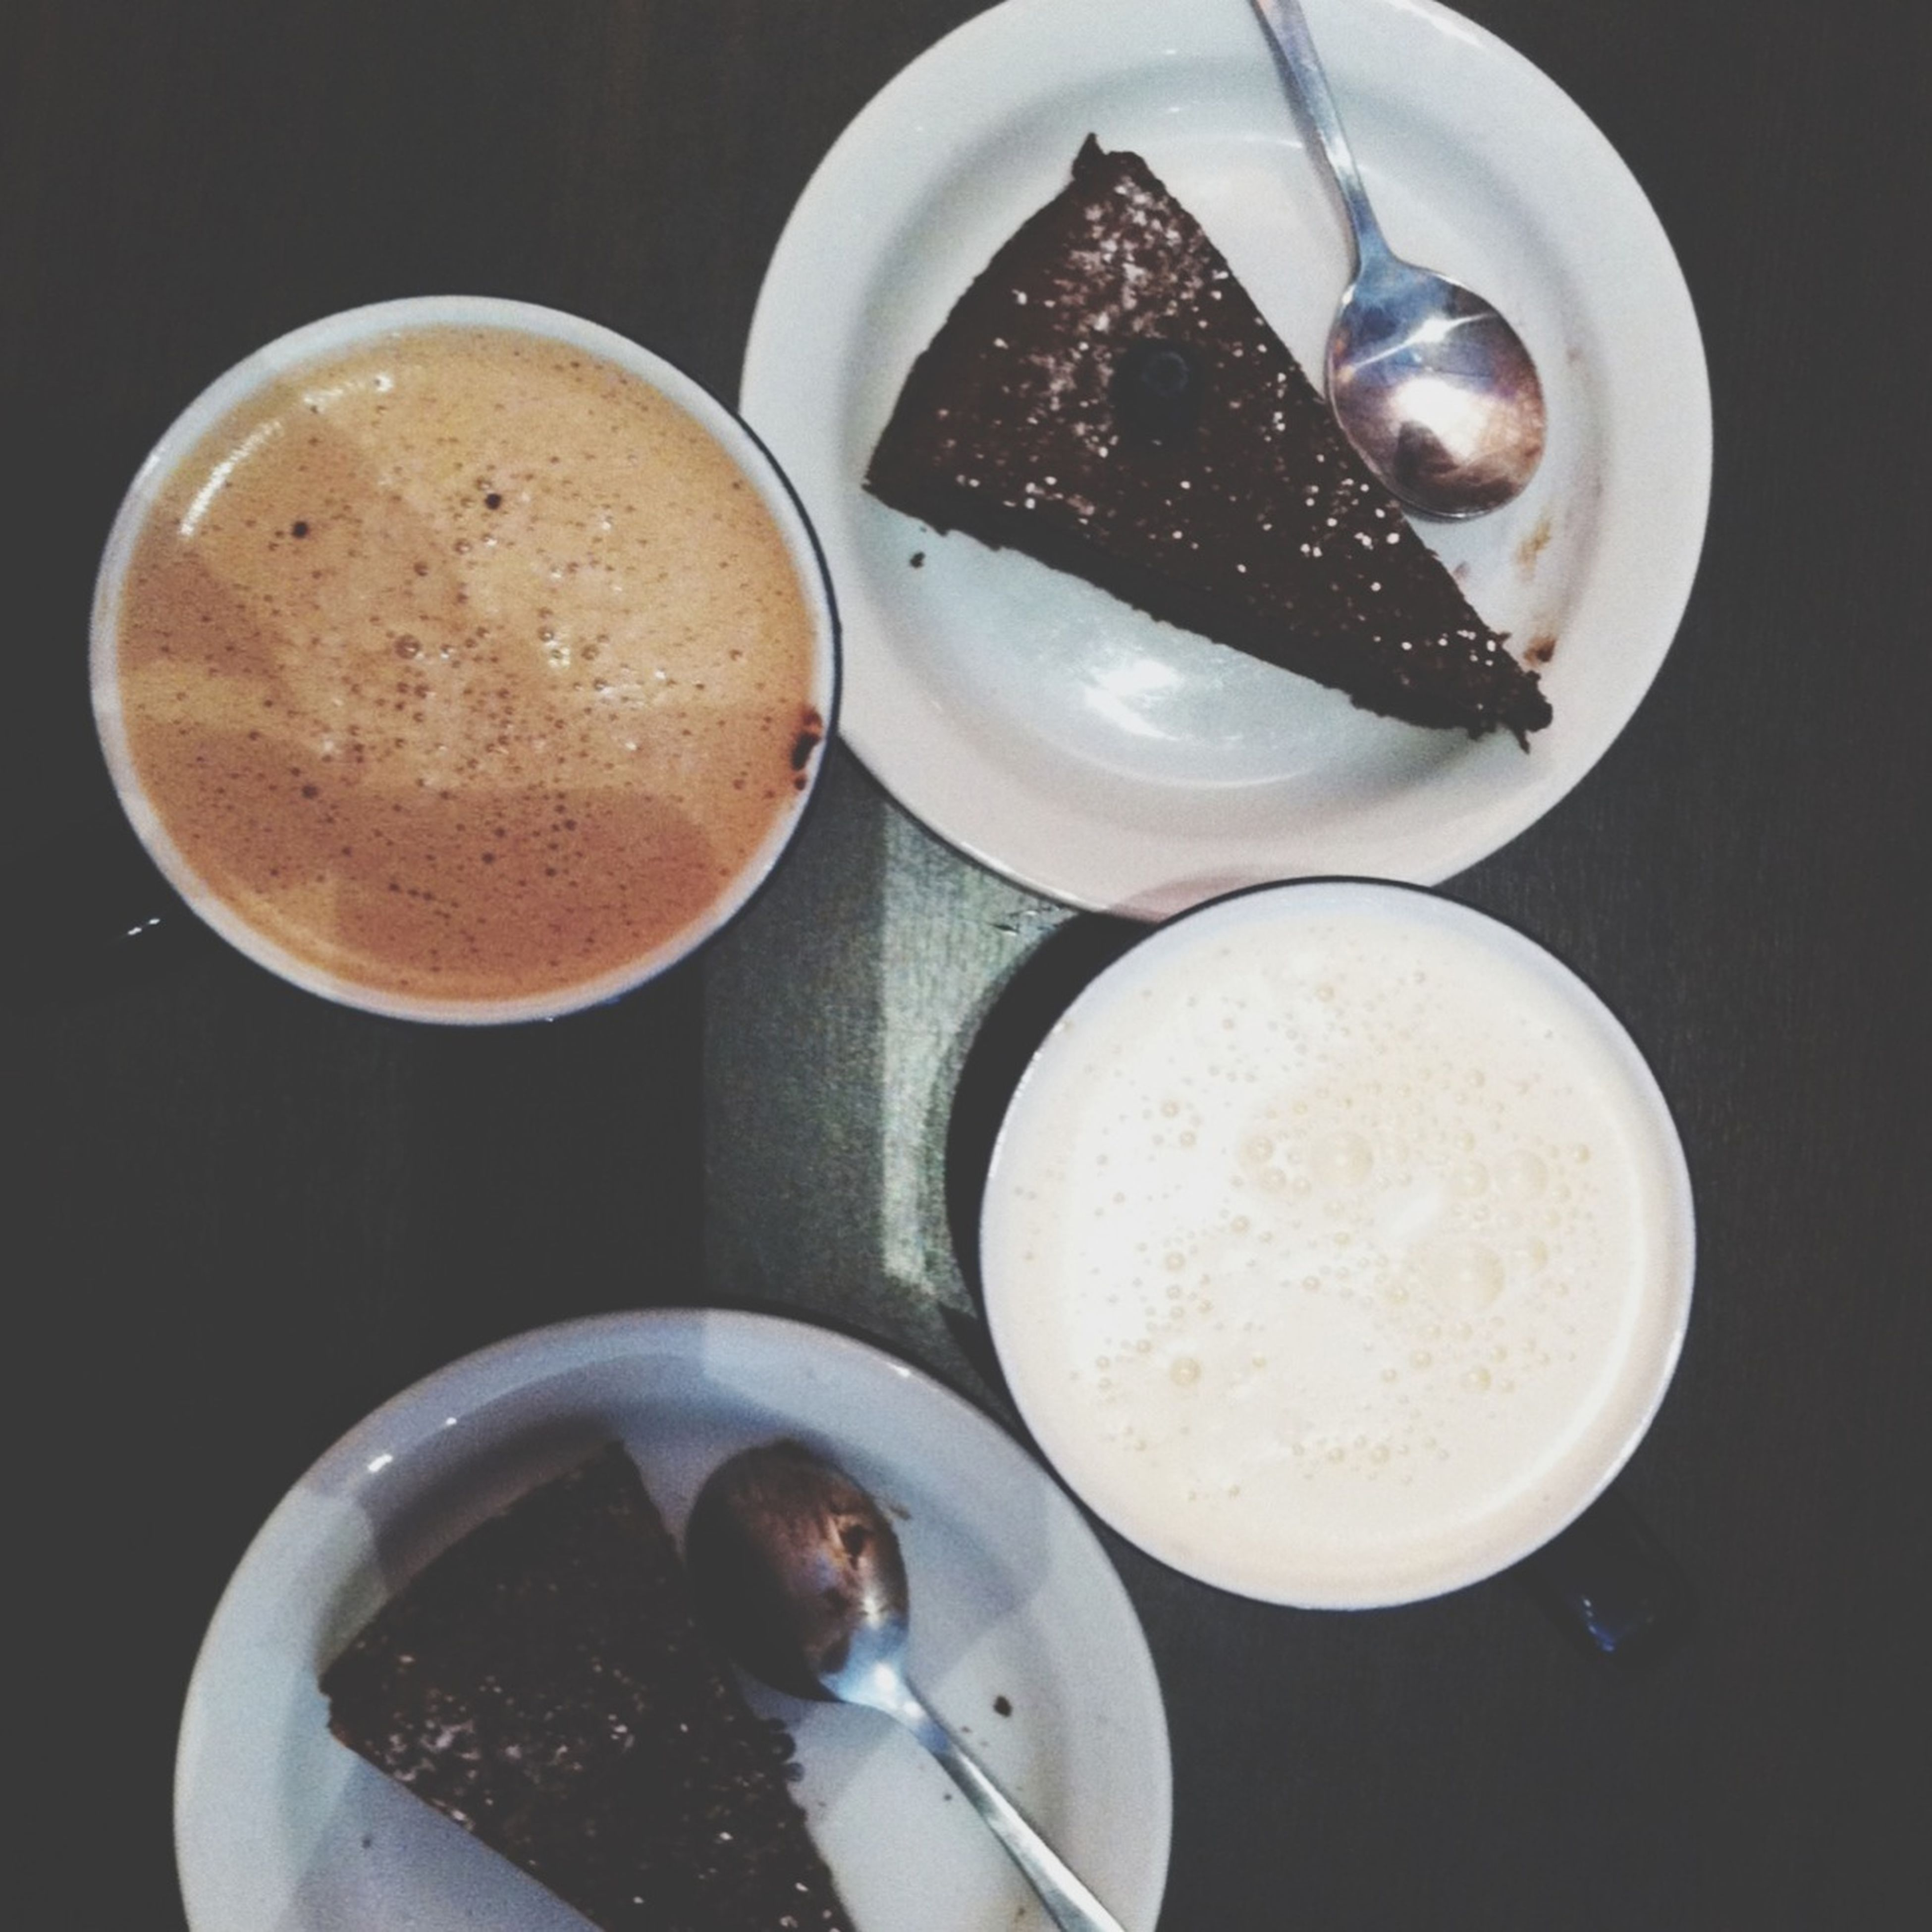 food and drink, indoors, food, freshness, still life, table, high angle view, plate, drink, healthy eating, spoon, ready-to-eat, coffee cup, coffee - drink, refreshment, breakfast, sweet food, bowl, fork, close-up